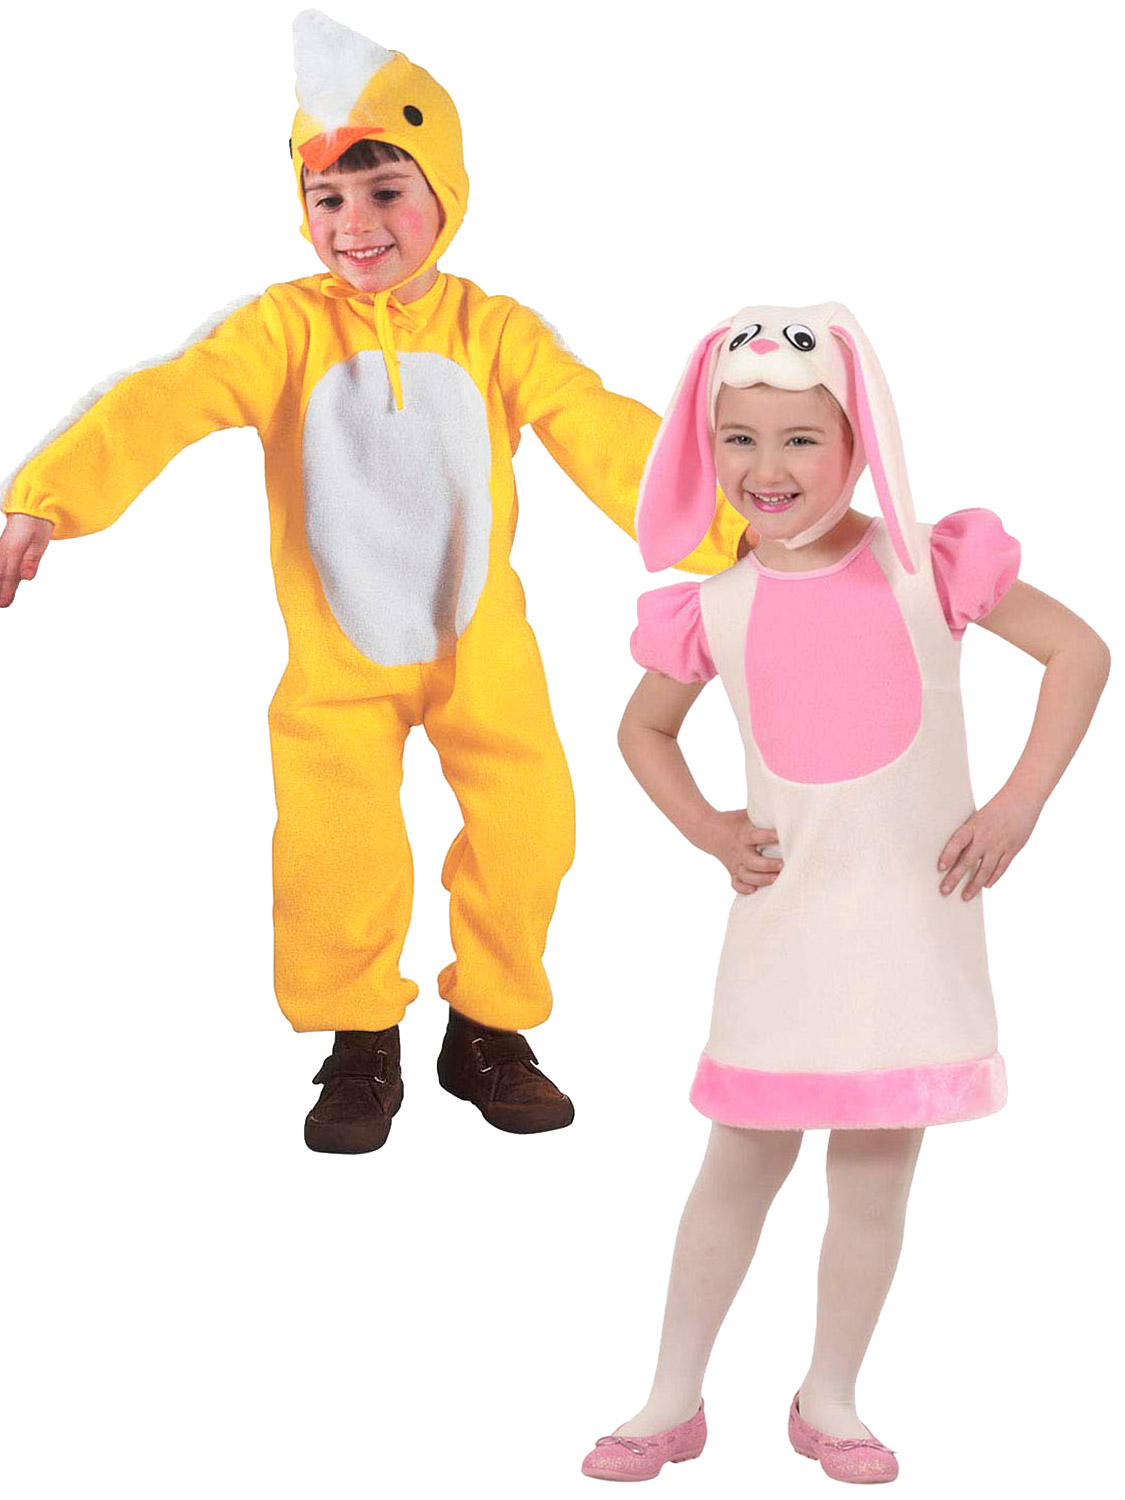 ac65b6907 Details about Childs Bunny Rabbit Little Chick Fancy Dress Costume Toddler  Boys Girls Easter